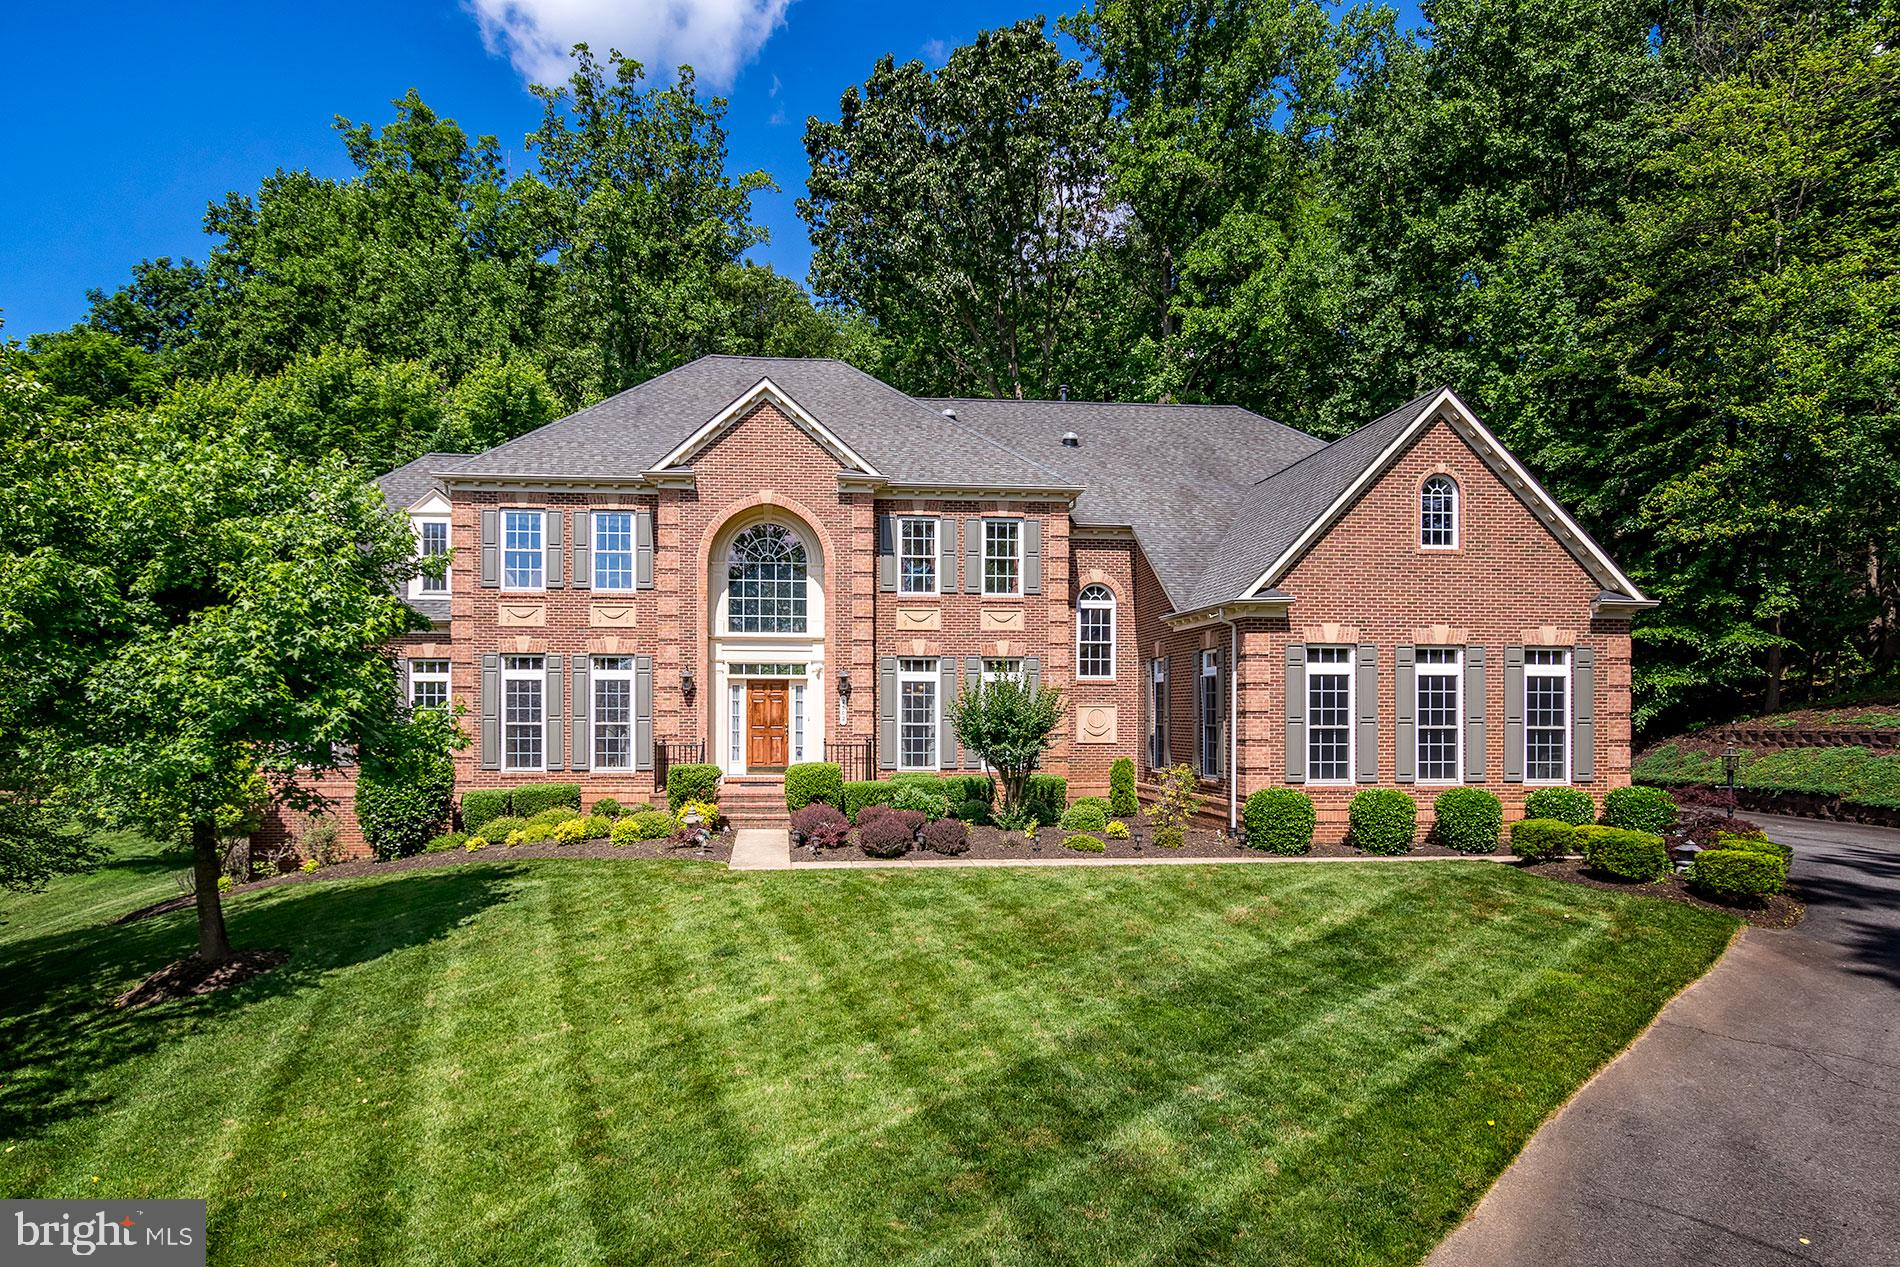 2502 COULTER LANE, OAKTON, VA 22124